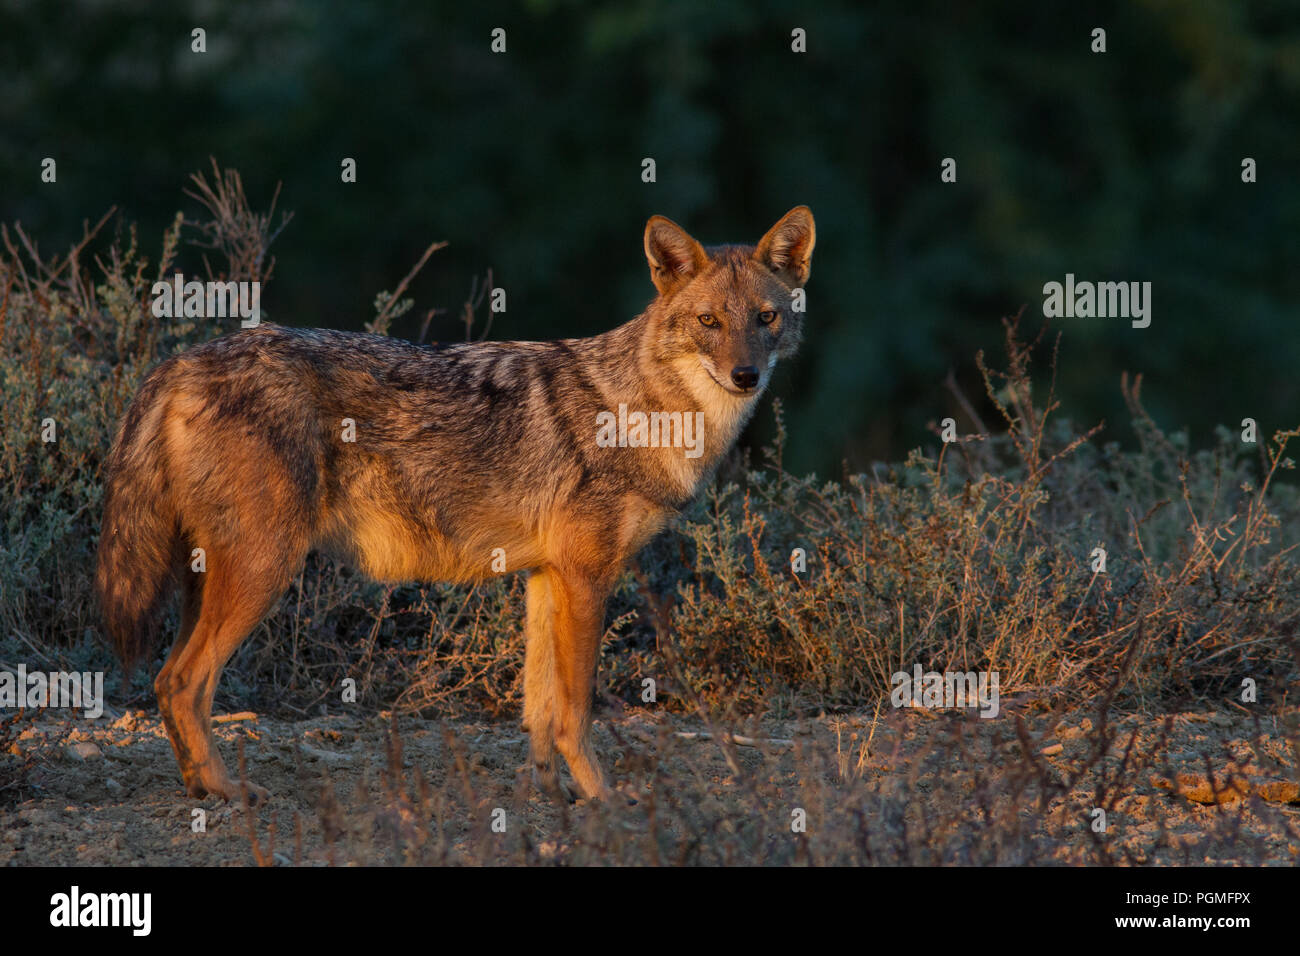 A Golden Jackal (Canis aureus) portrait in golden light from Greater Rann of Kutch, Gujarat, India - Stock Image